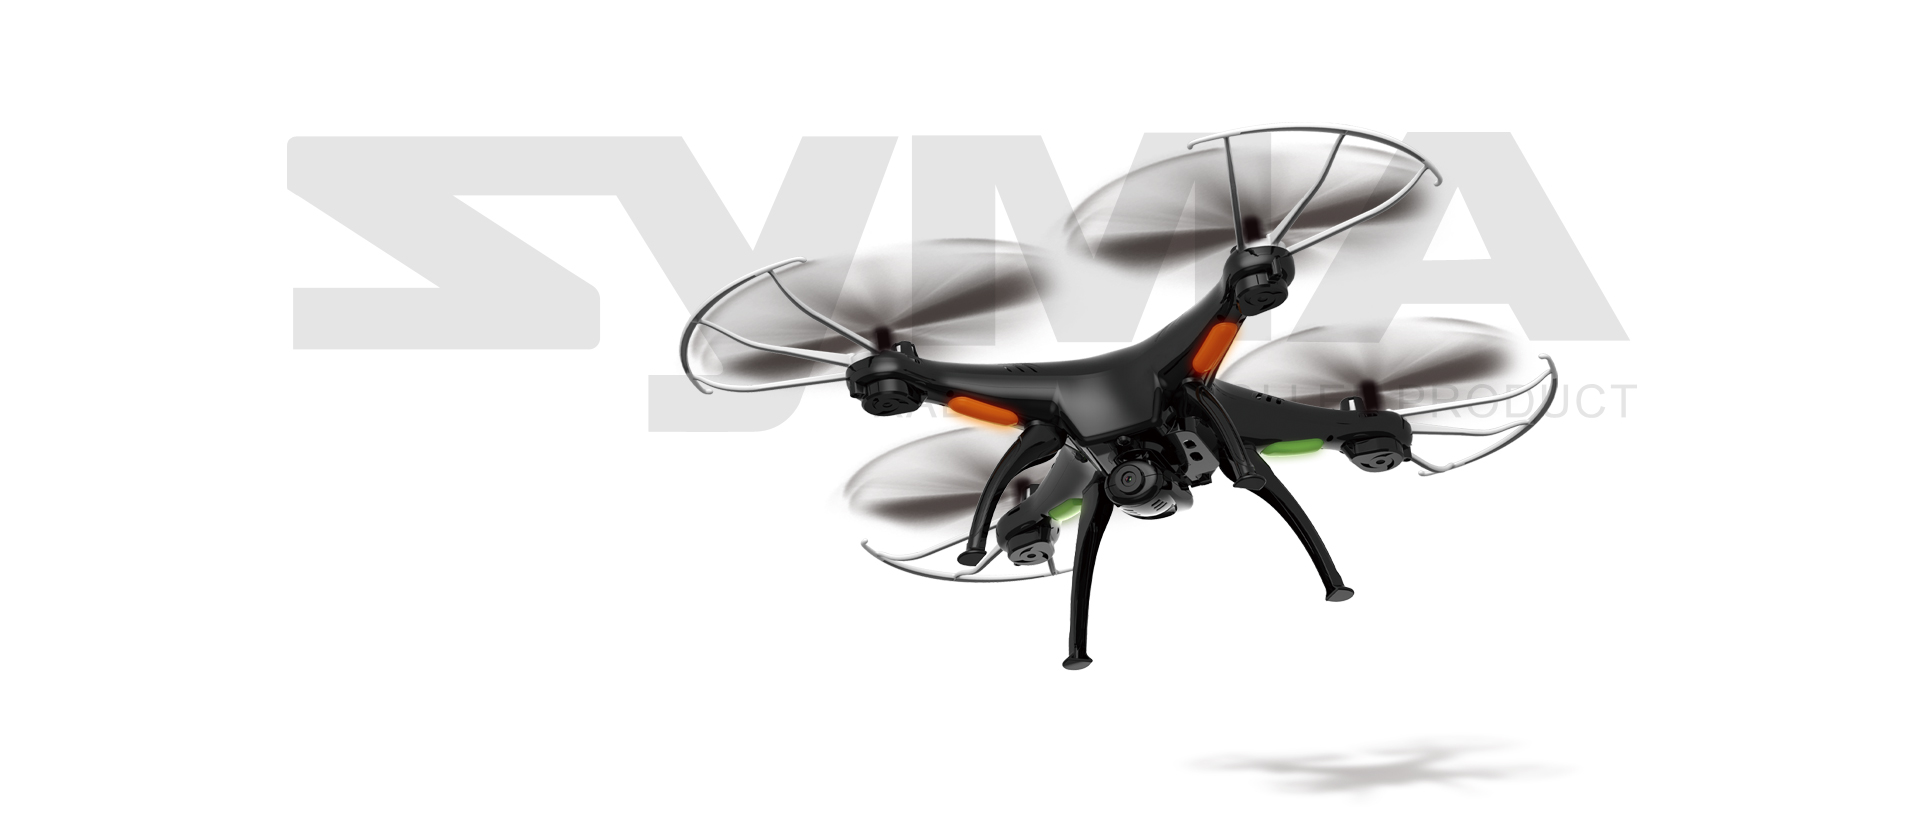 Original Syma X5sw Drone 2 4ghz Real End 7 28 1 15 Am